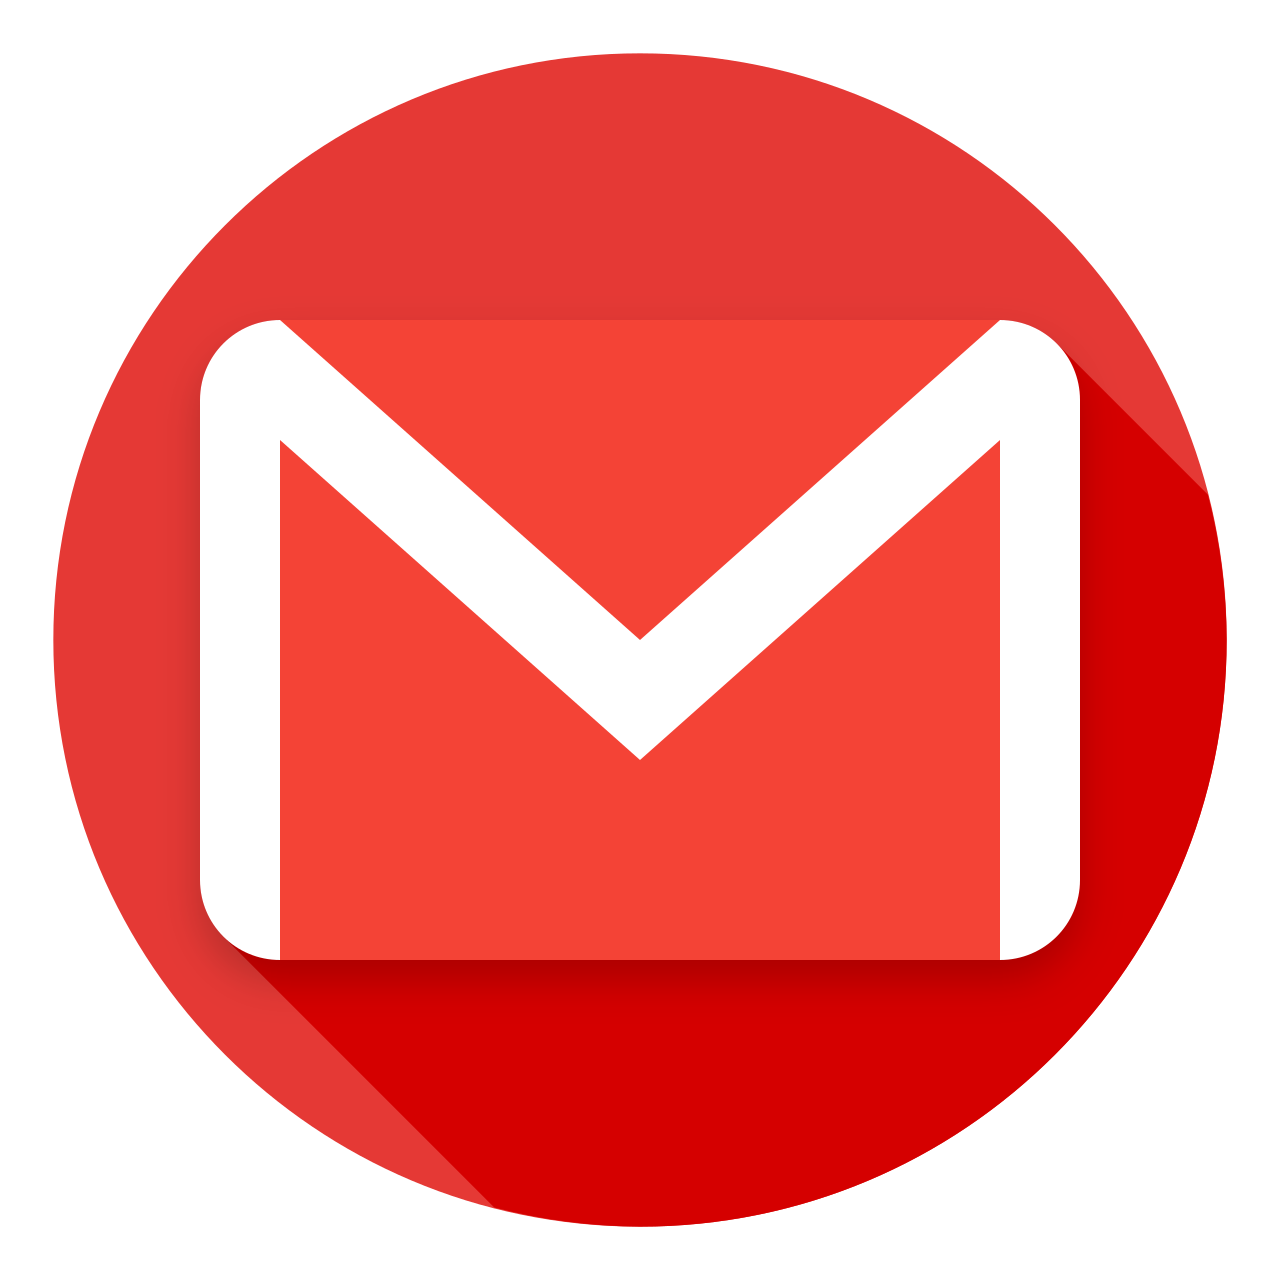 Save icon format free. Gmail logo png transparent background graphic black and white library